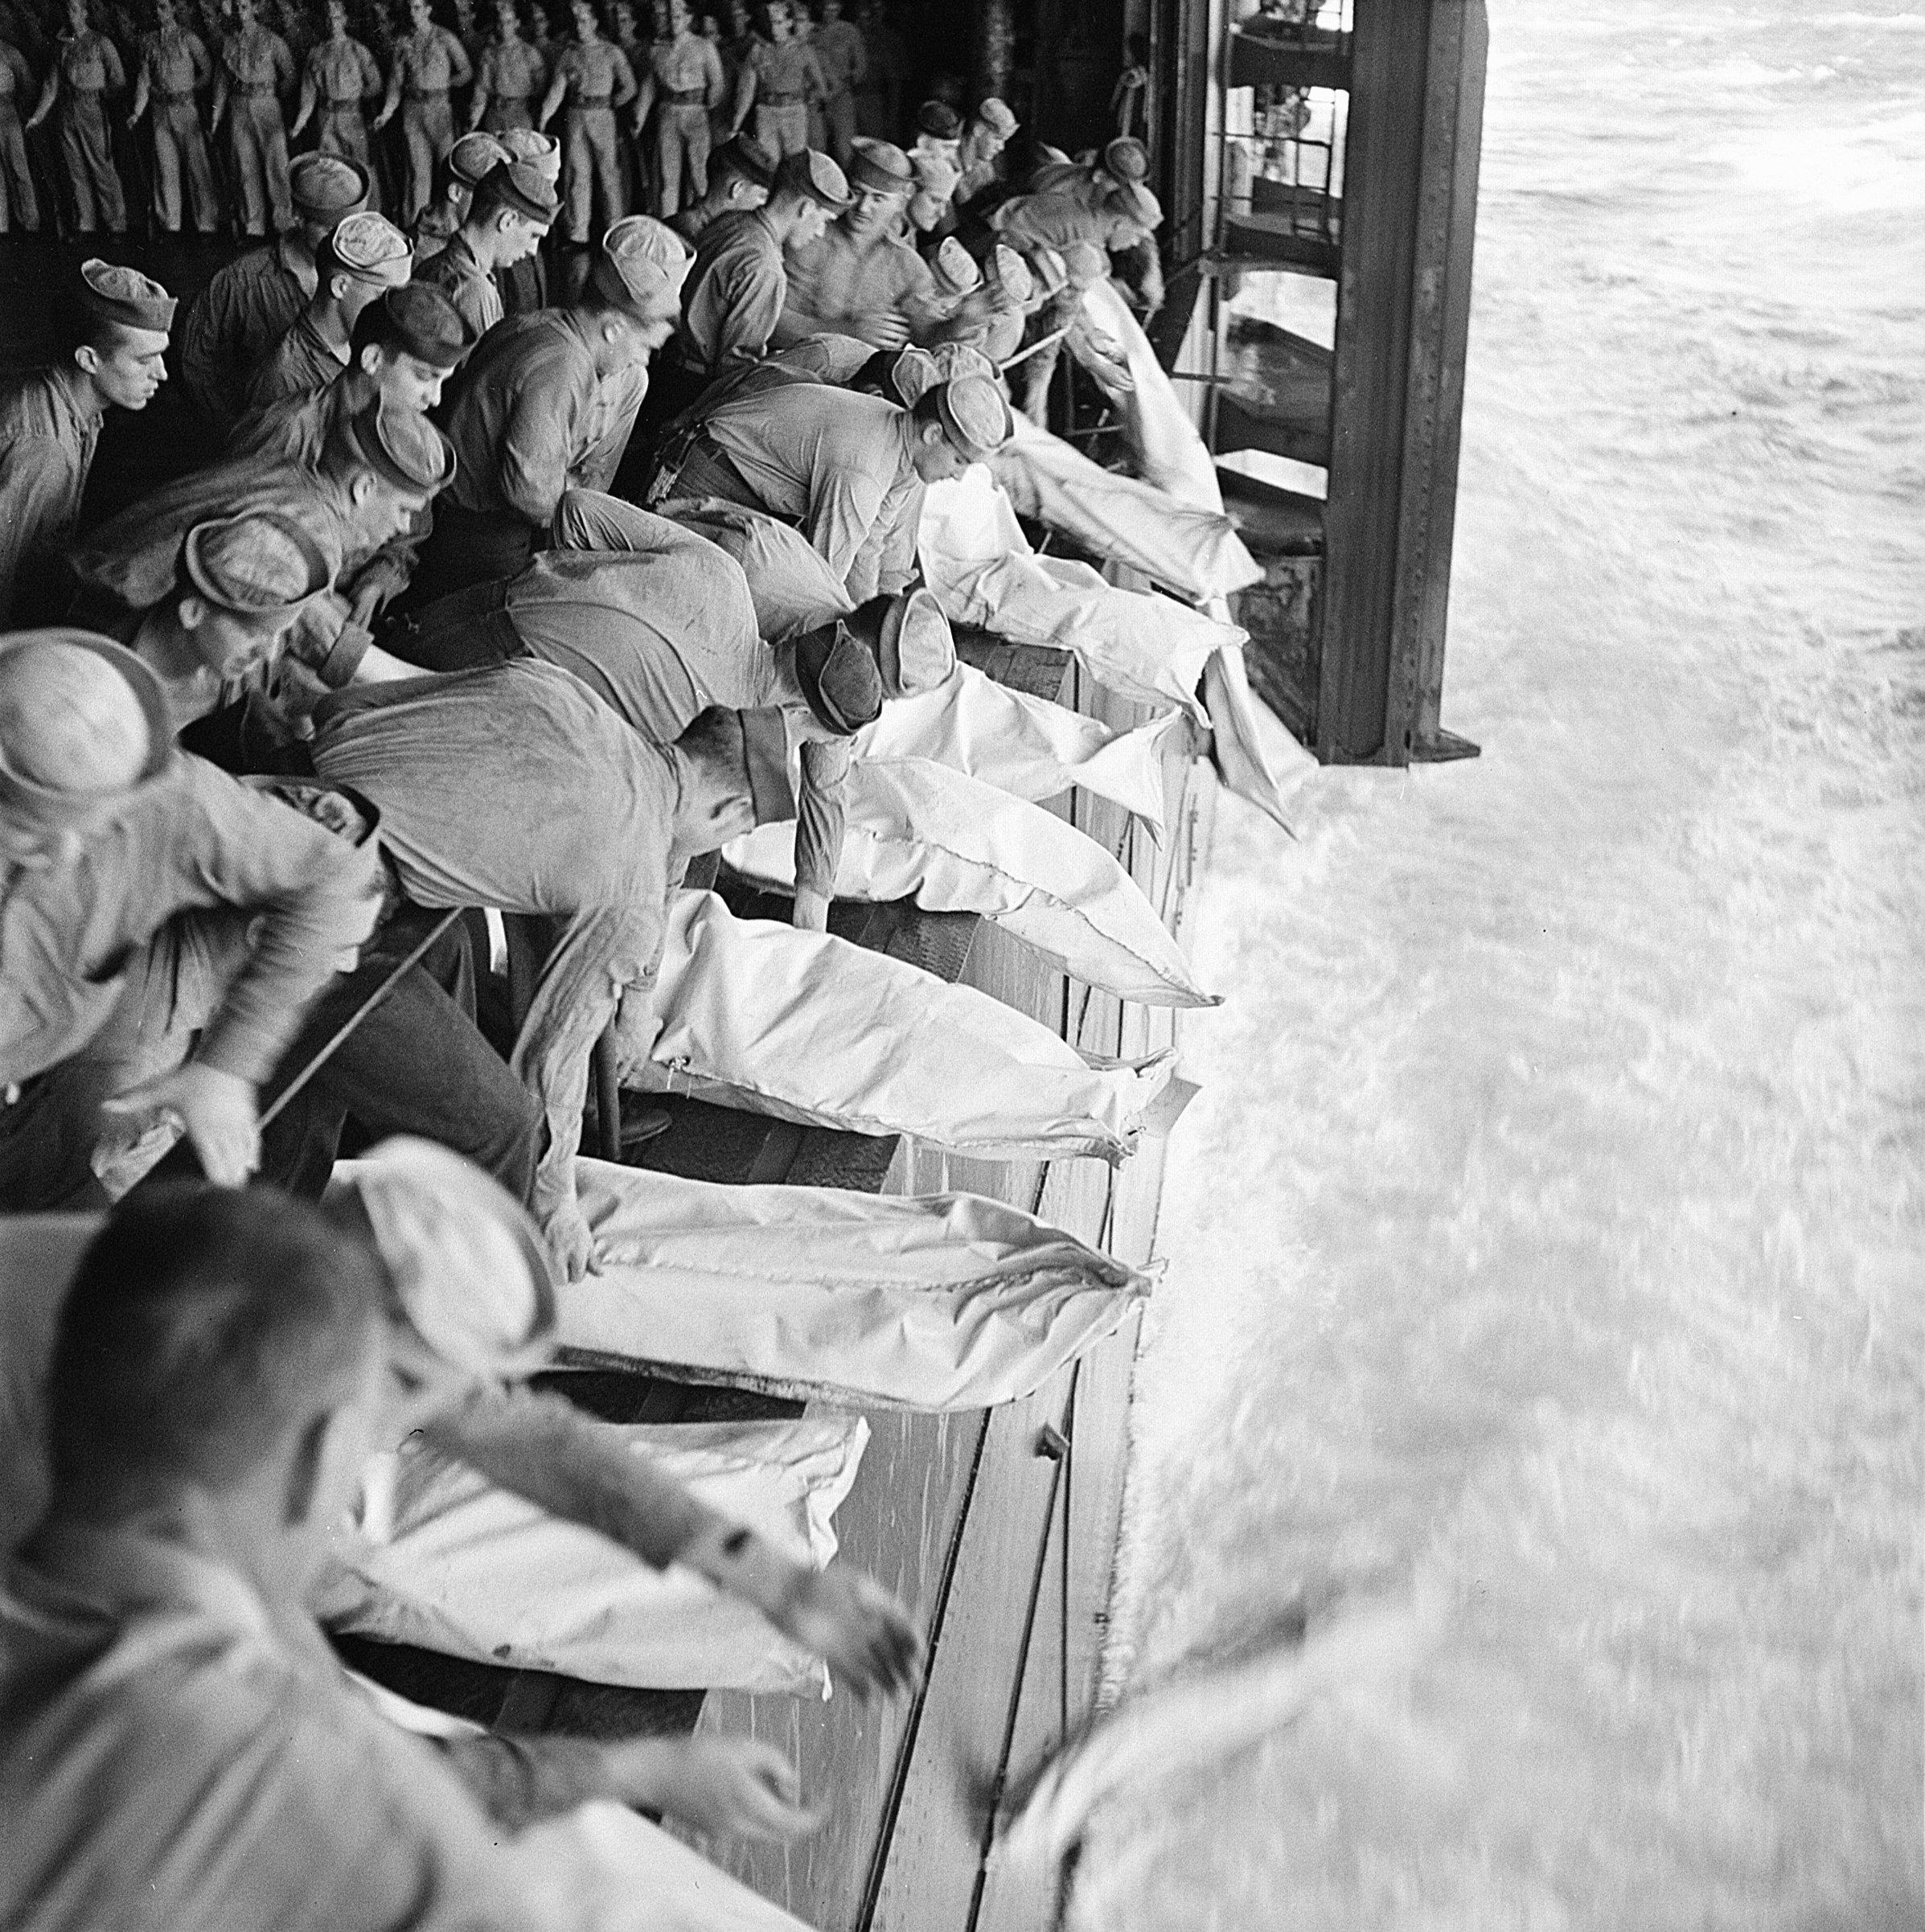 Sailors preparing to slide shrouded bodies over the side